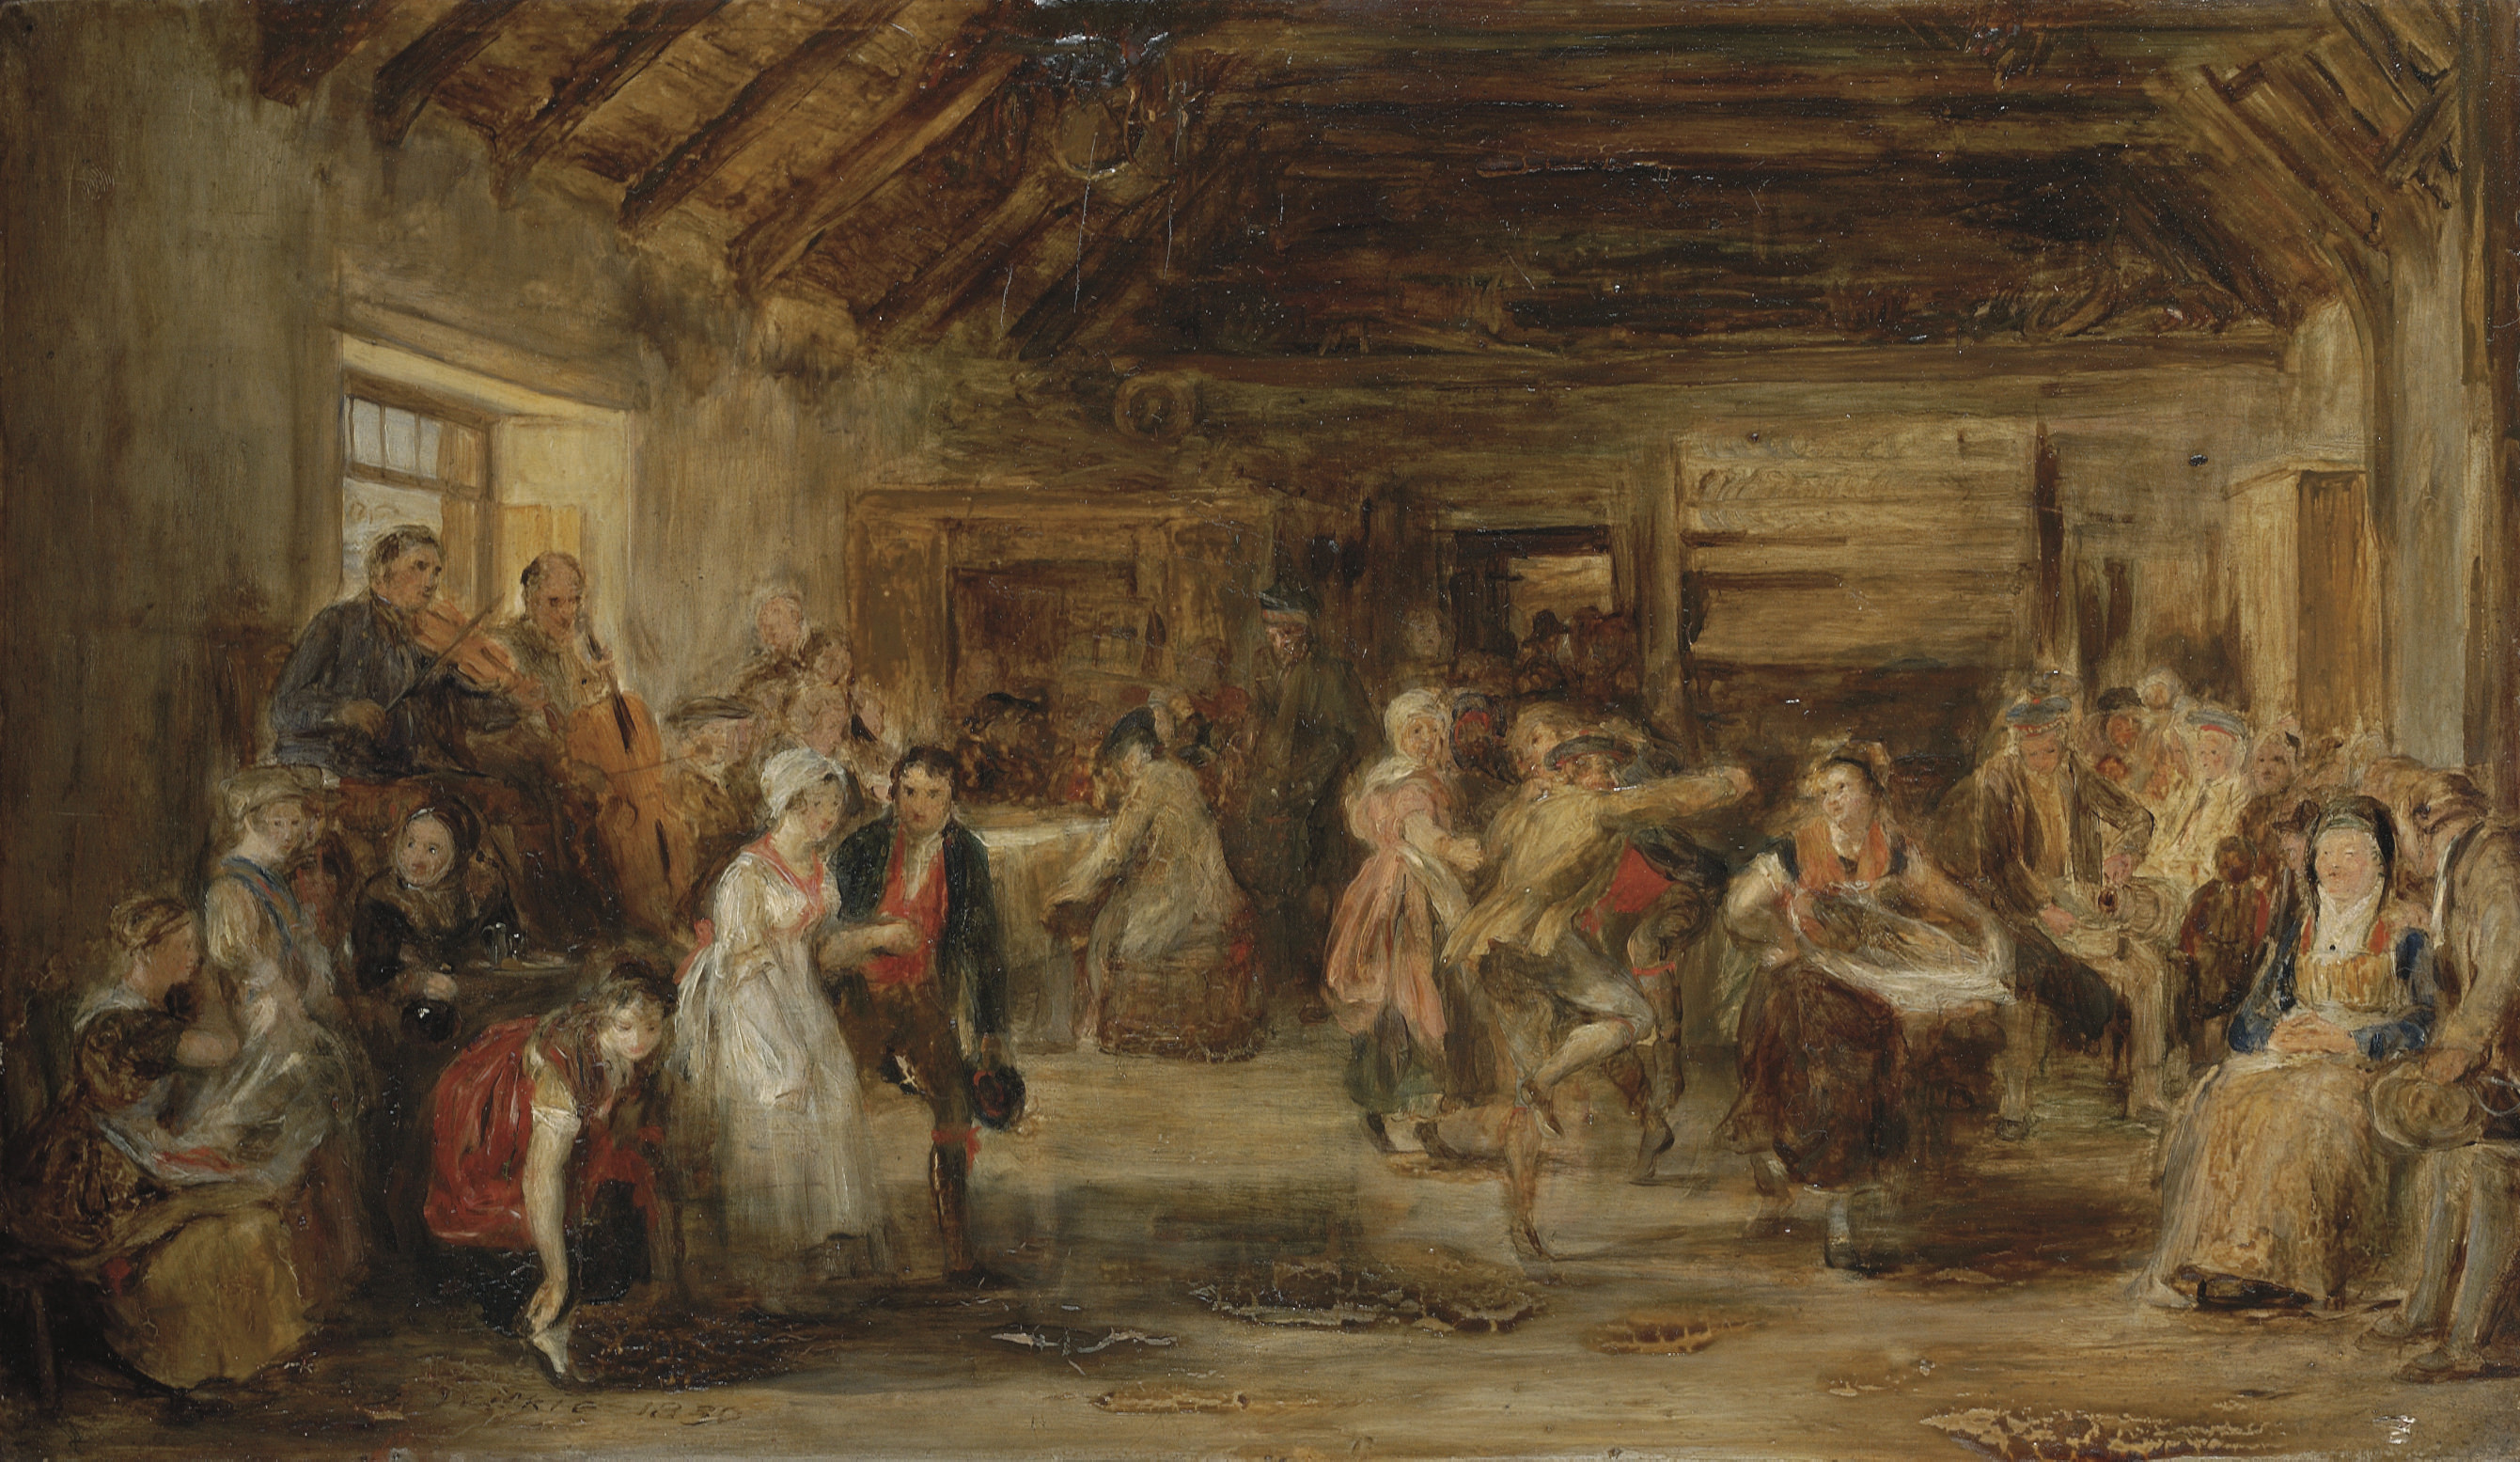 The Penny Wedding, a sketch